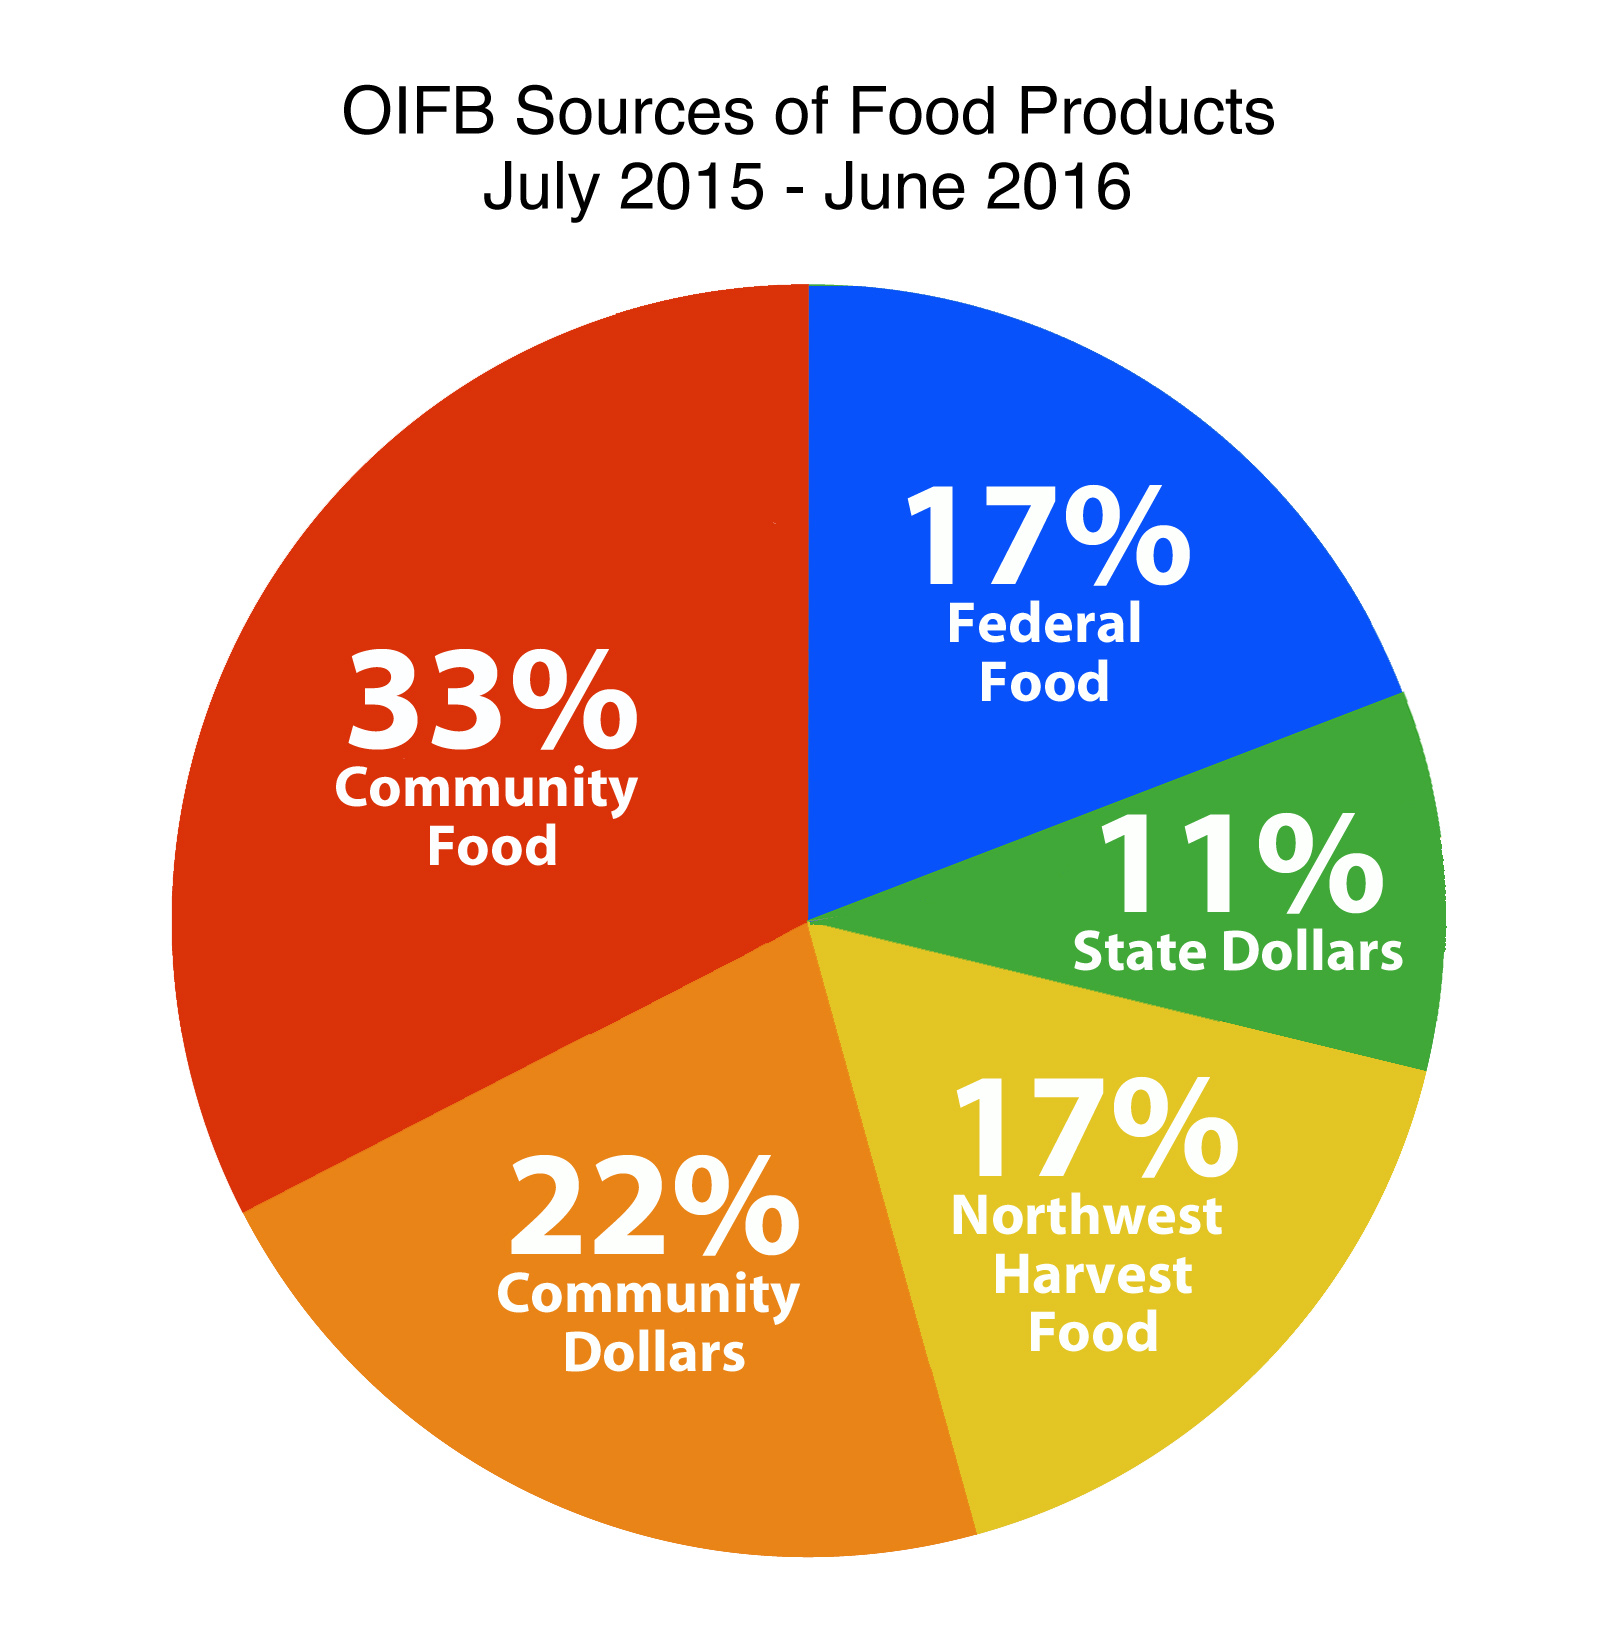 Oifb Sources Of Food Products 715 616 Orcas Issues News Views